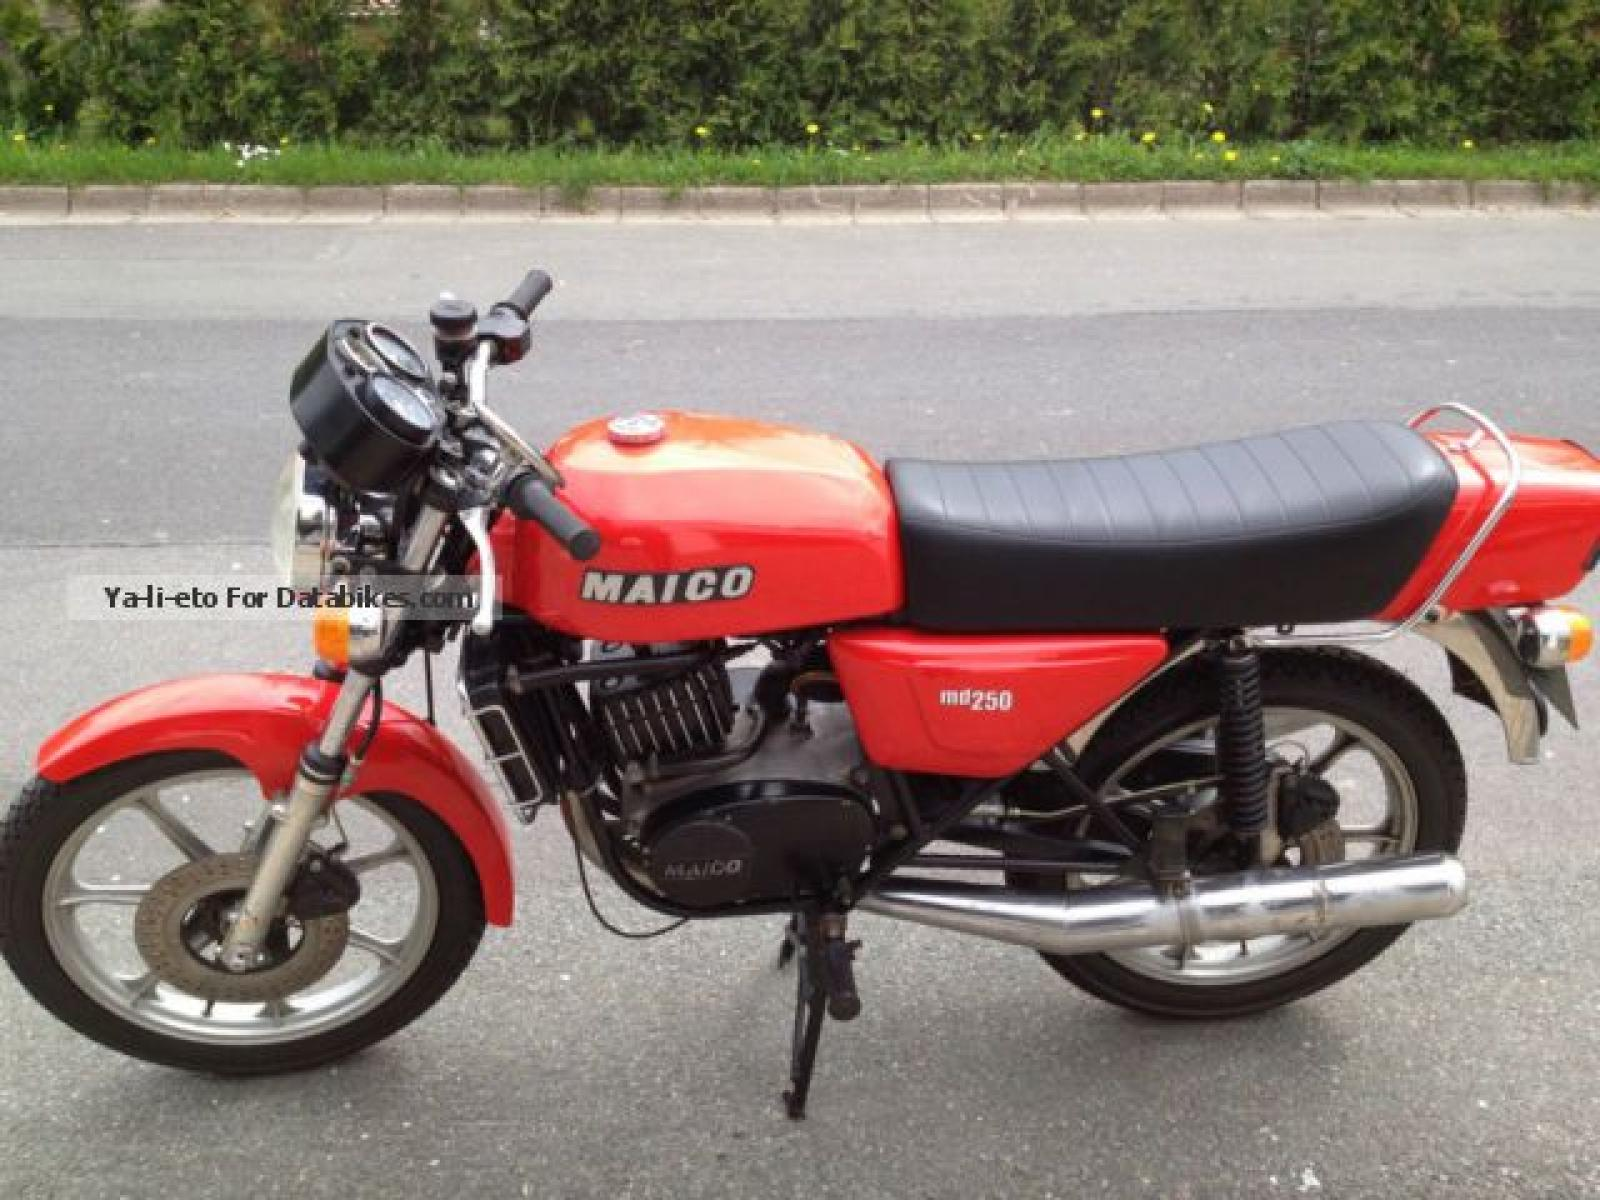 Maico MD 250 WK 1983 images #103719